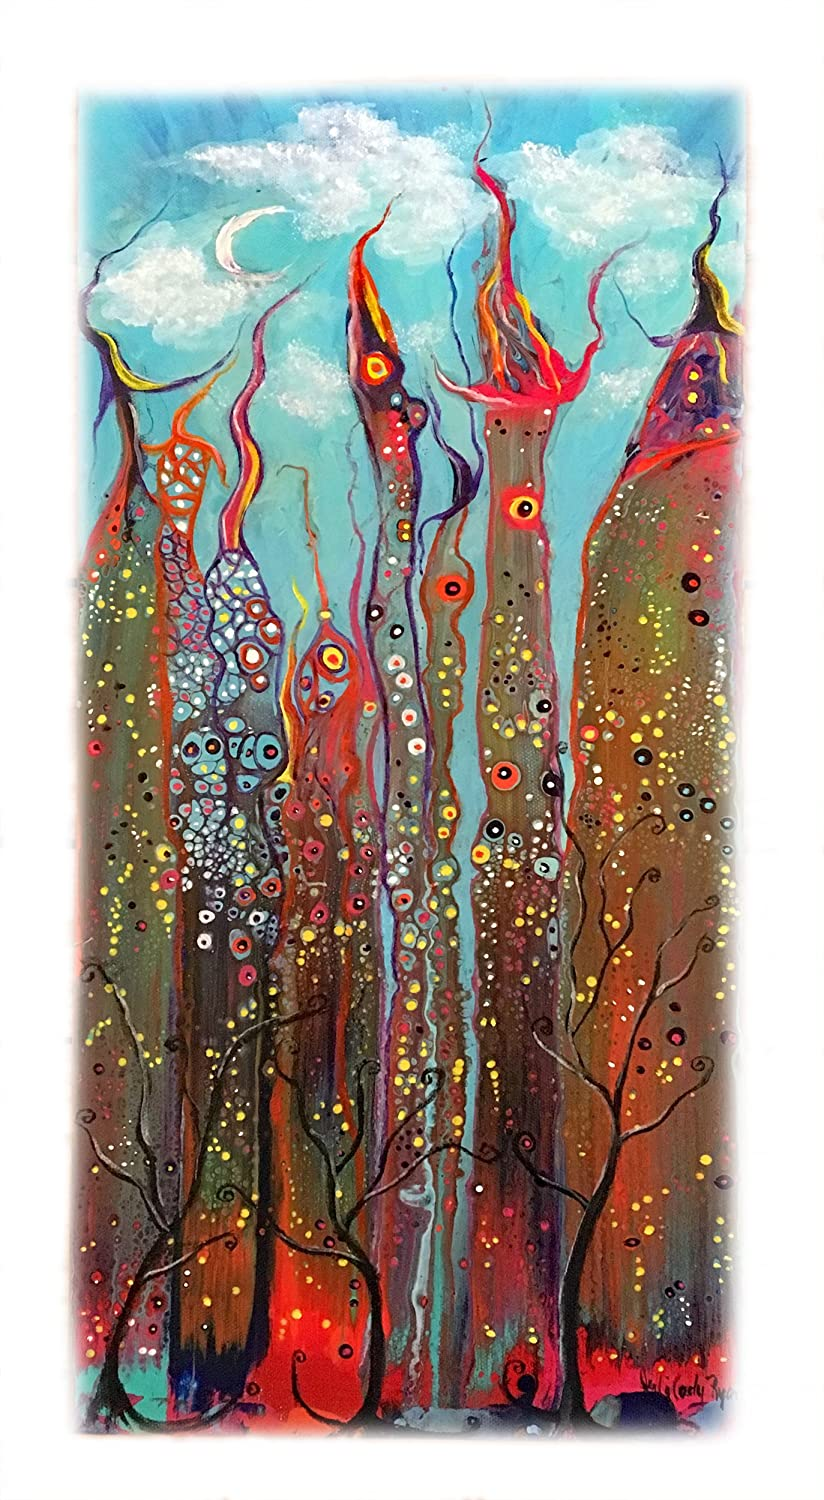 Original Mixed Media Painting on Canvas